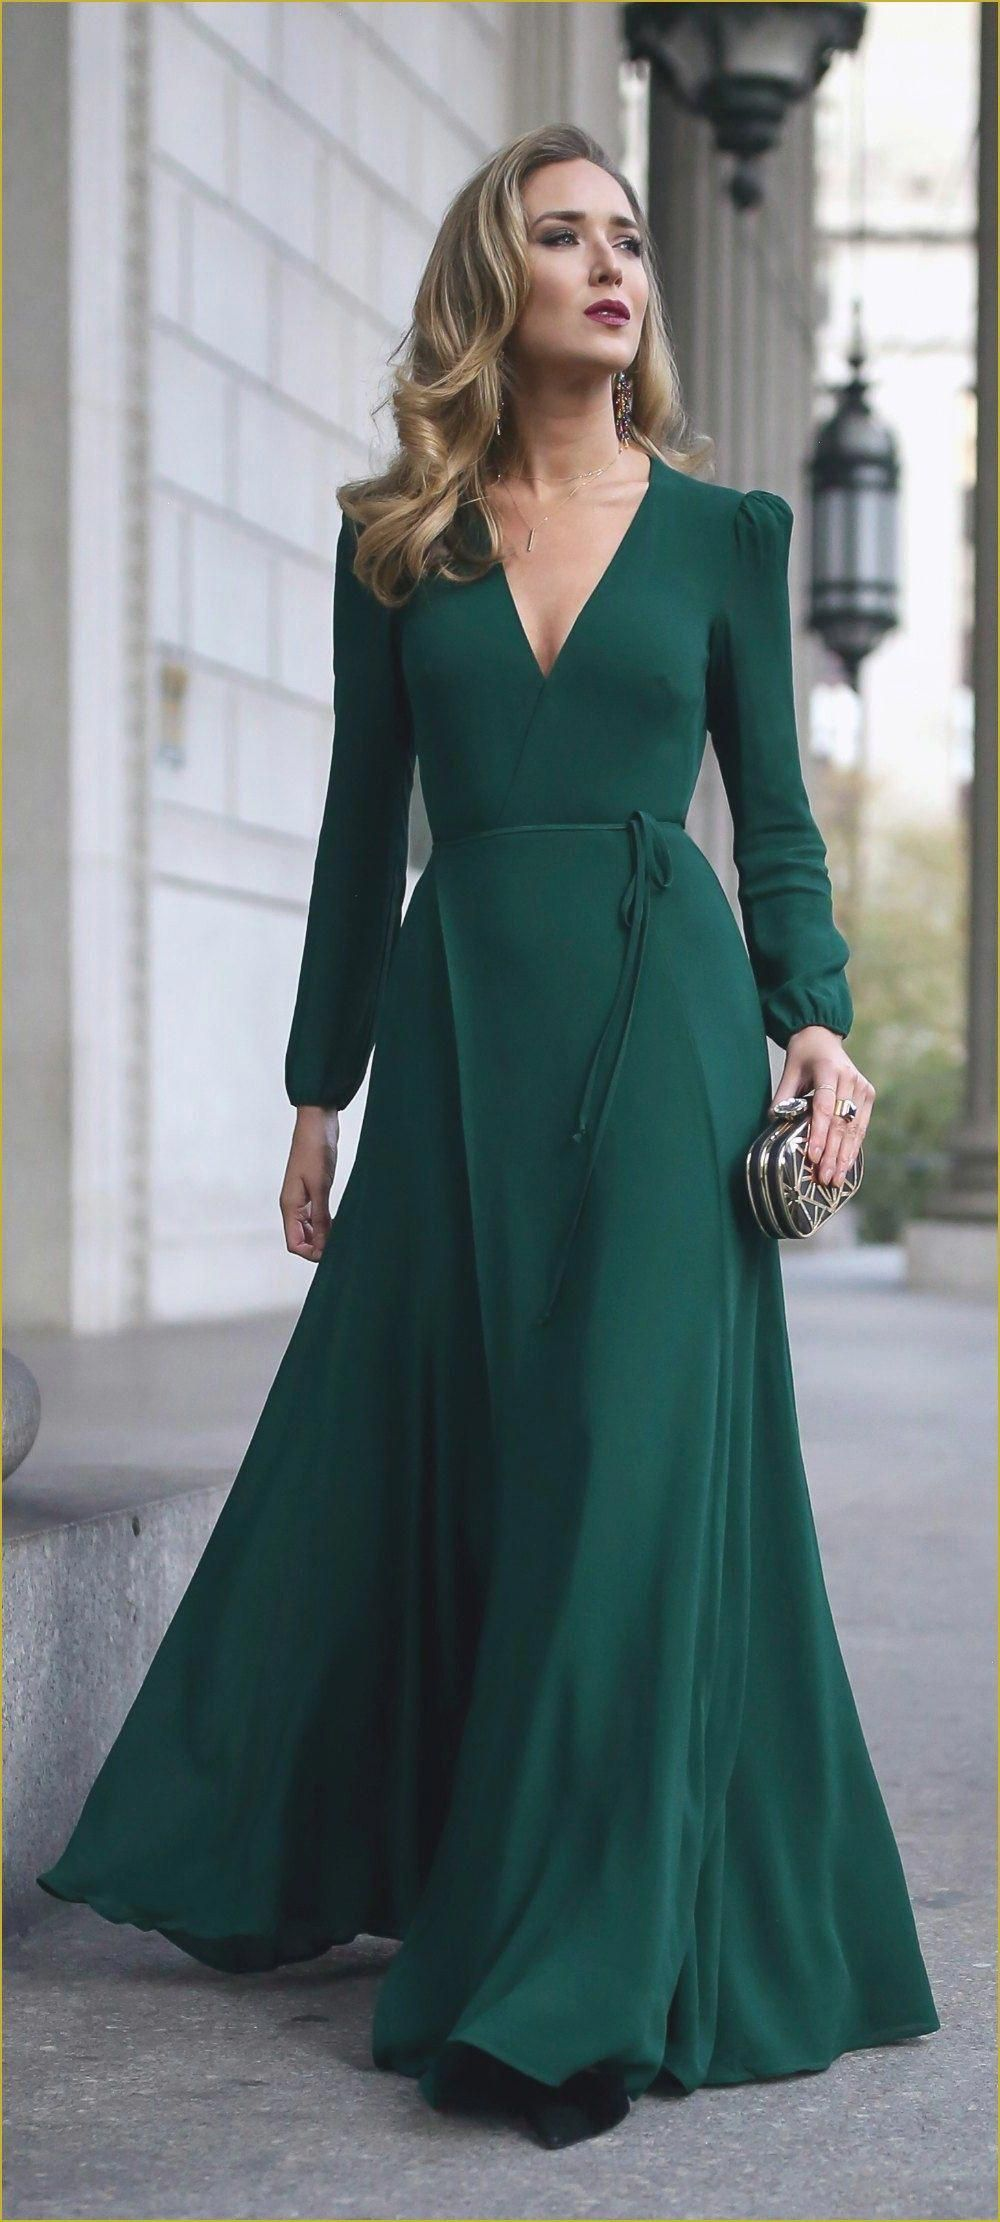 97 astonishing Chic Fall Wedding Guest Outfits for Ladies